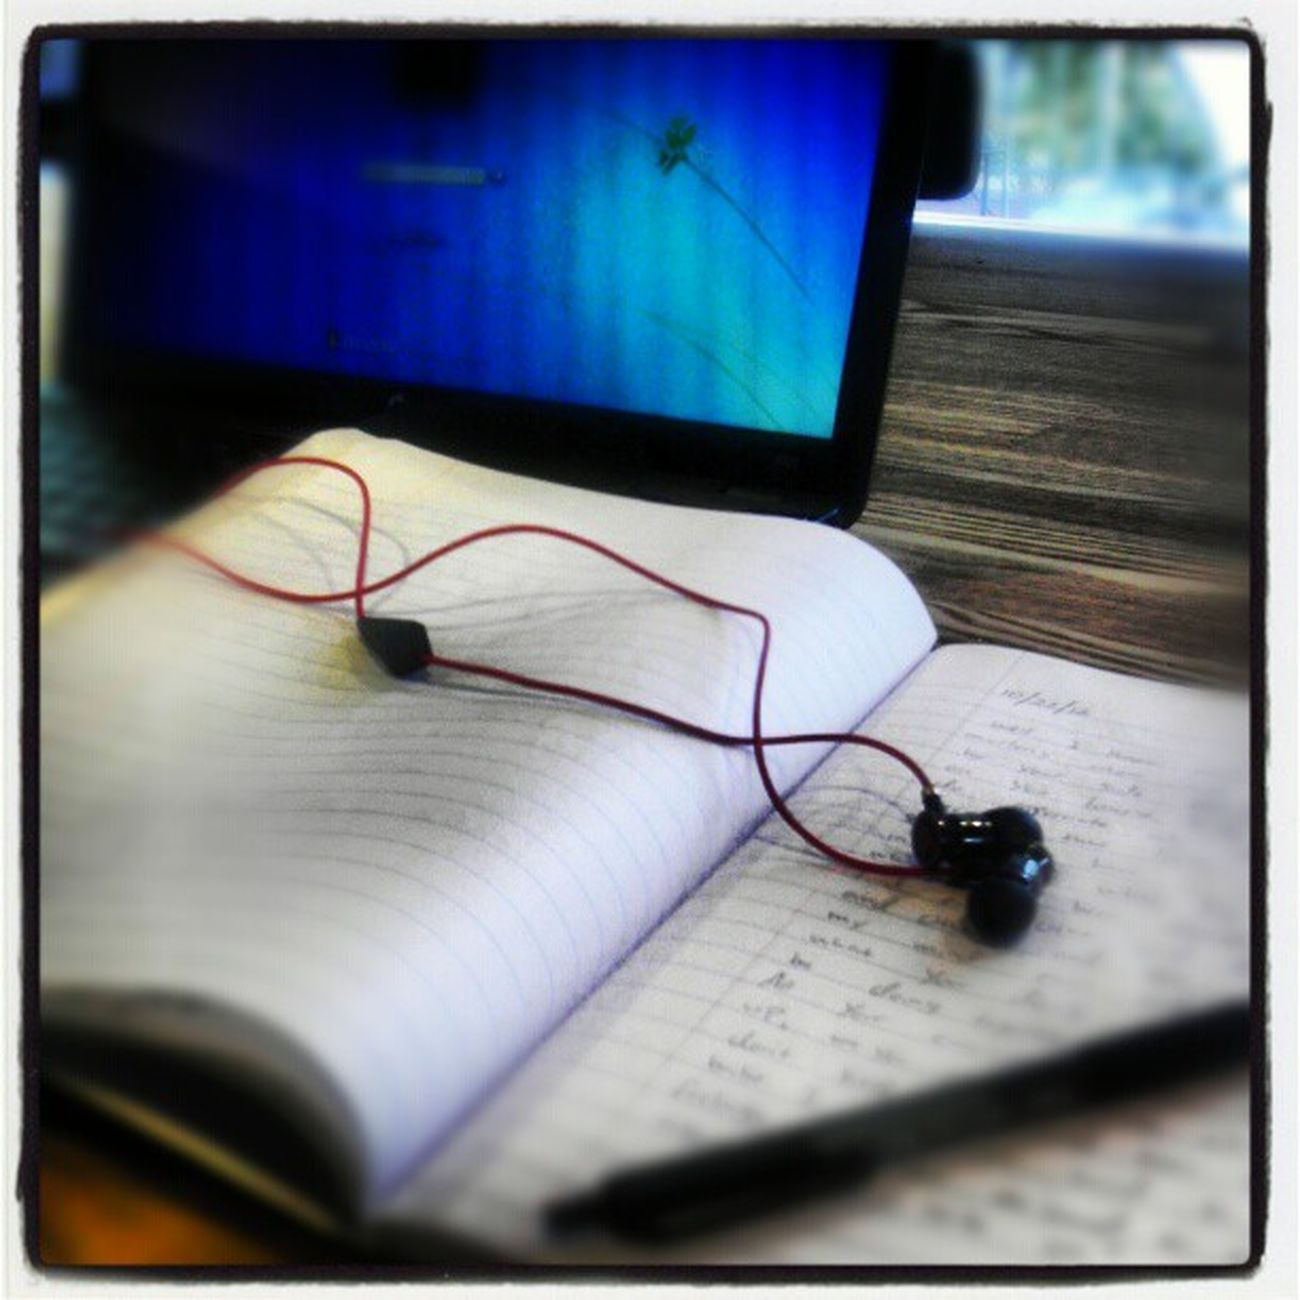 Well I'm here at Starbucks listening to Music and writing to Her in Ournotebook drdrebeats HPlaptop blackpen @peaceloveramos